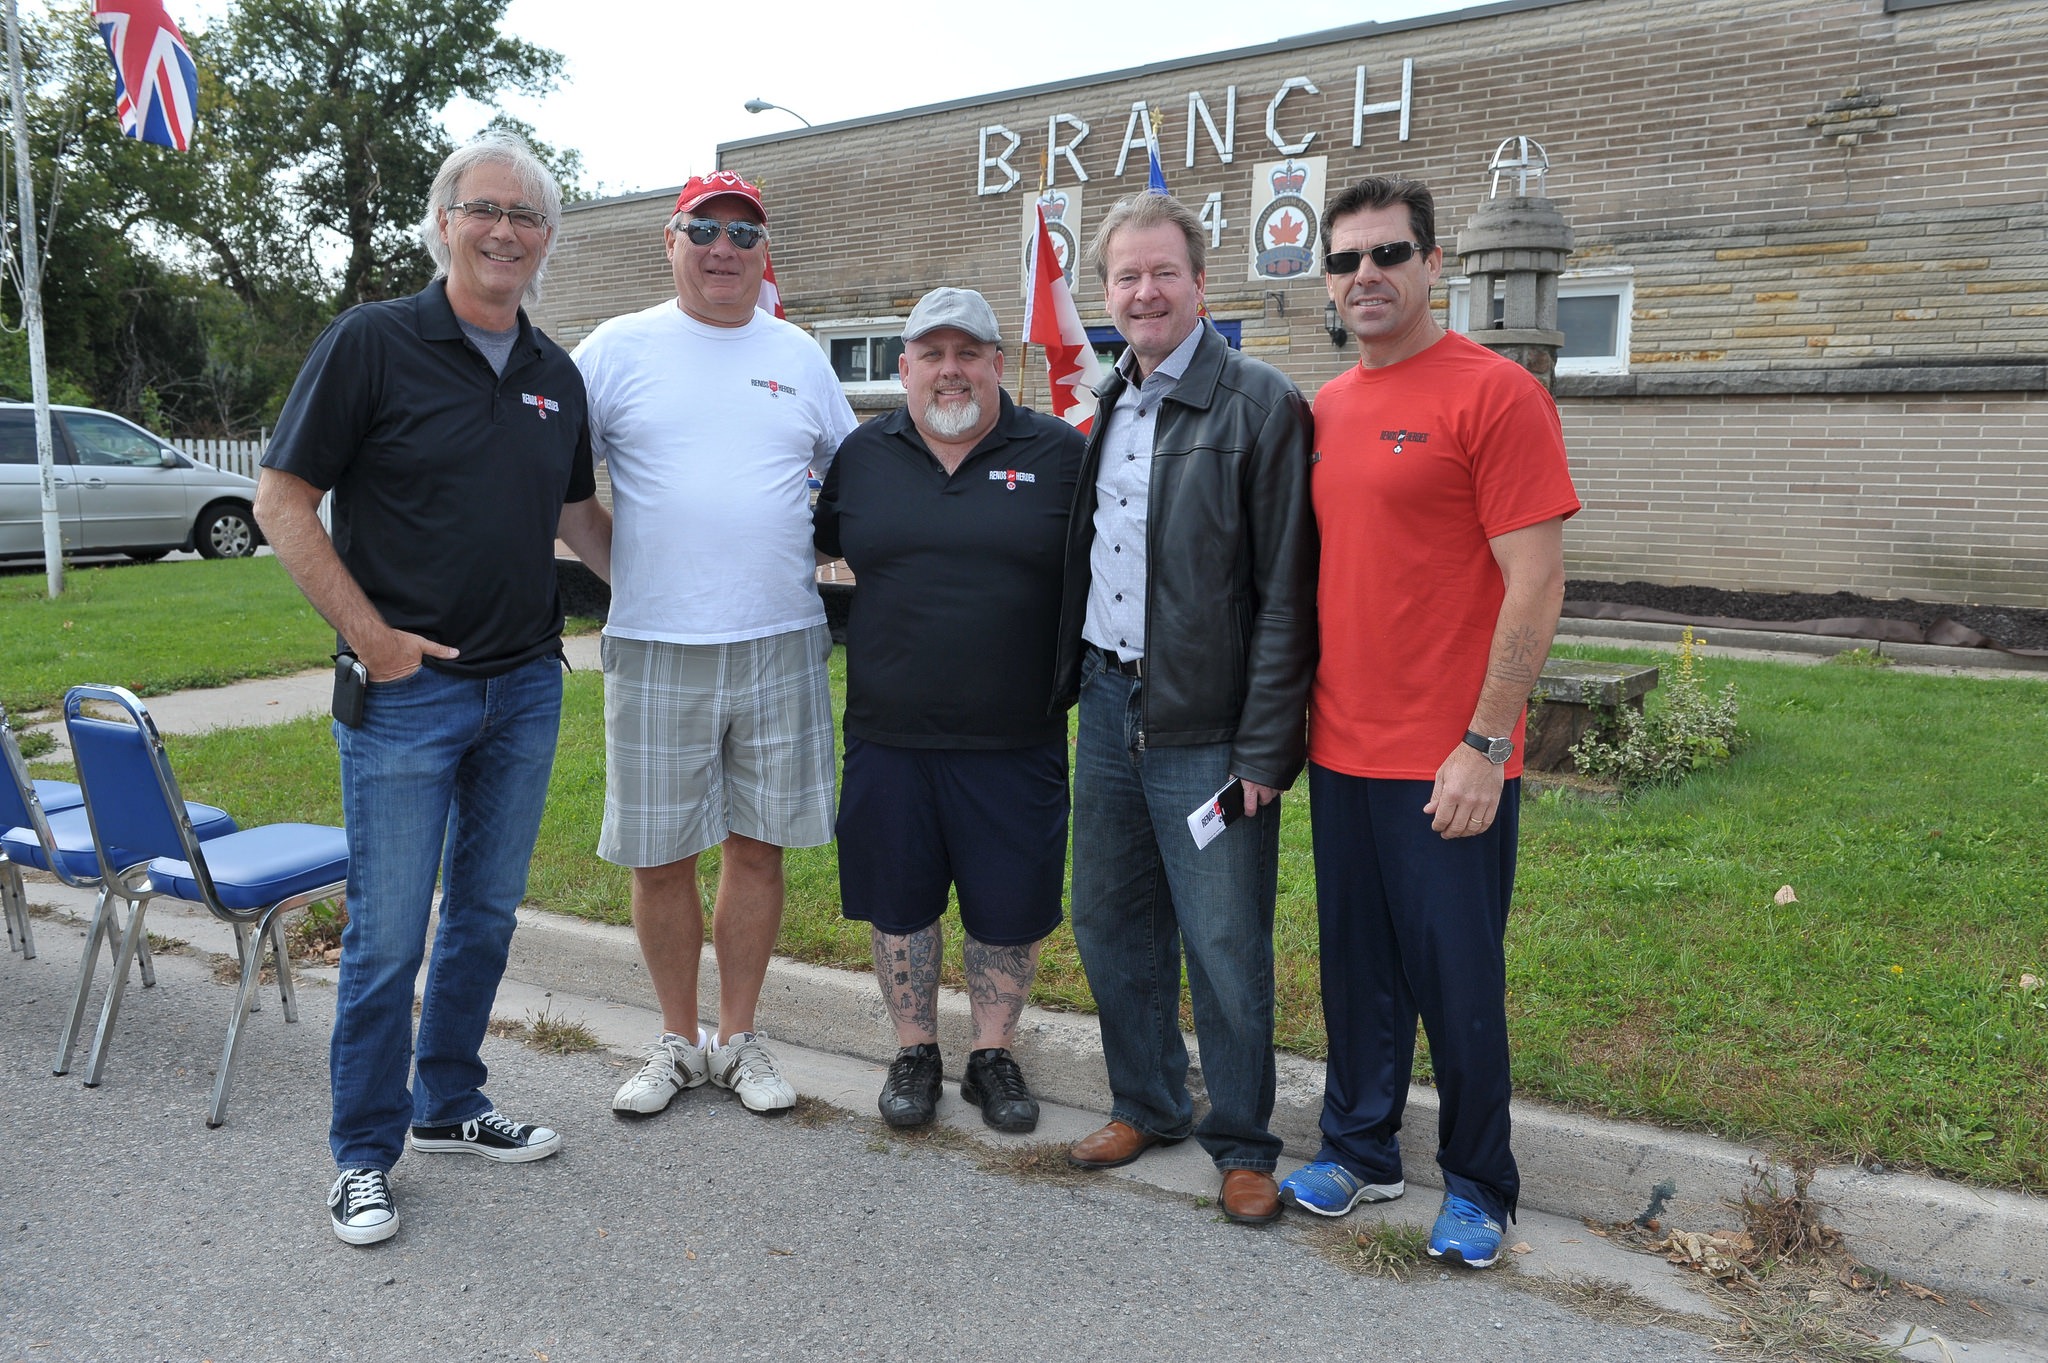 Television personality and Renos to Heroes founders Jim with his brother Deryl Caruck (left to right) with well wishers along with Durval Terceira (far right) at last year's event.